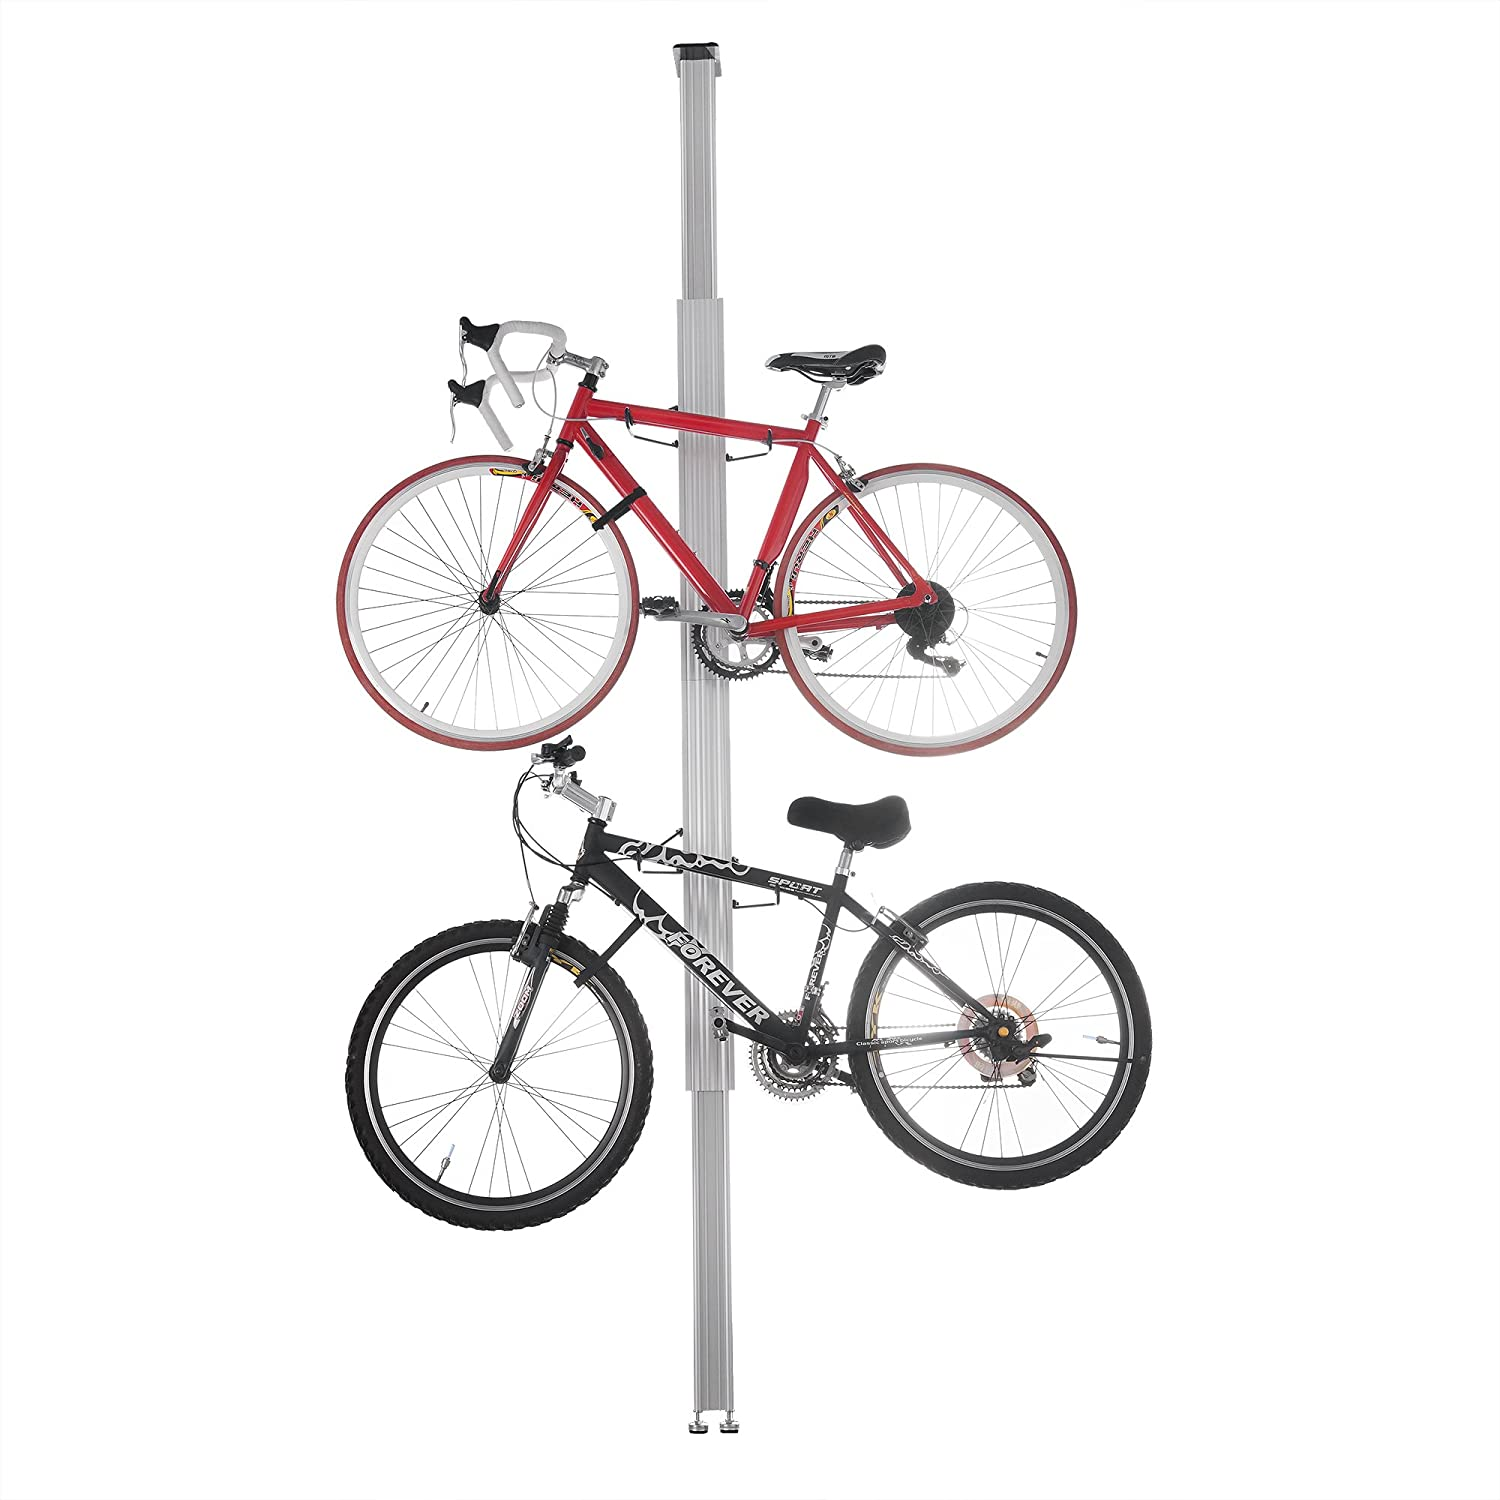 RAD Cycle Products Aluminum Bike Stand Bicycle Rack Storage or Display for Two Bicycles 2024 Aluminum Bike Rack